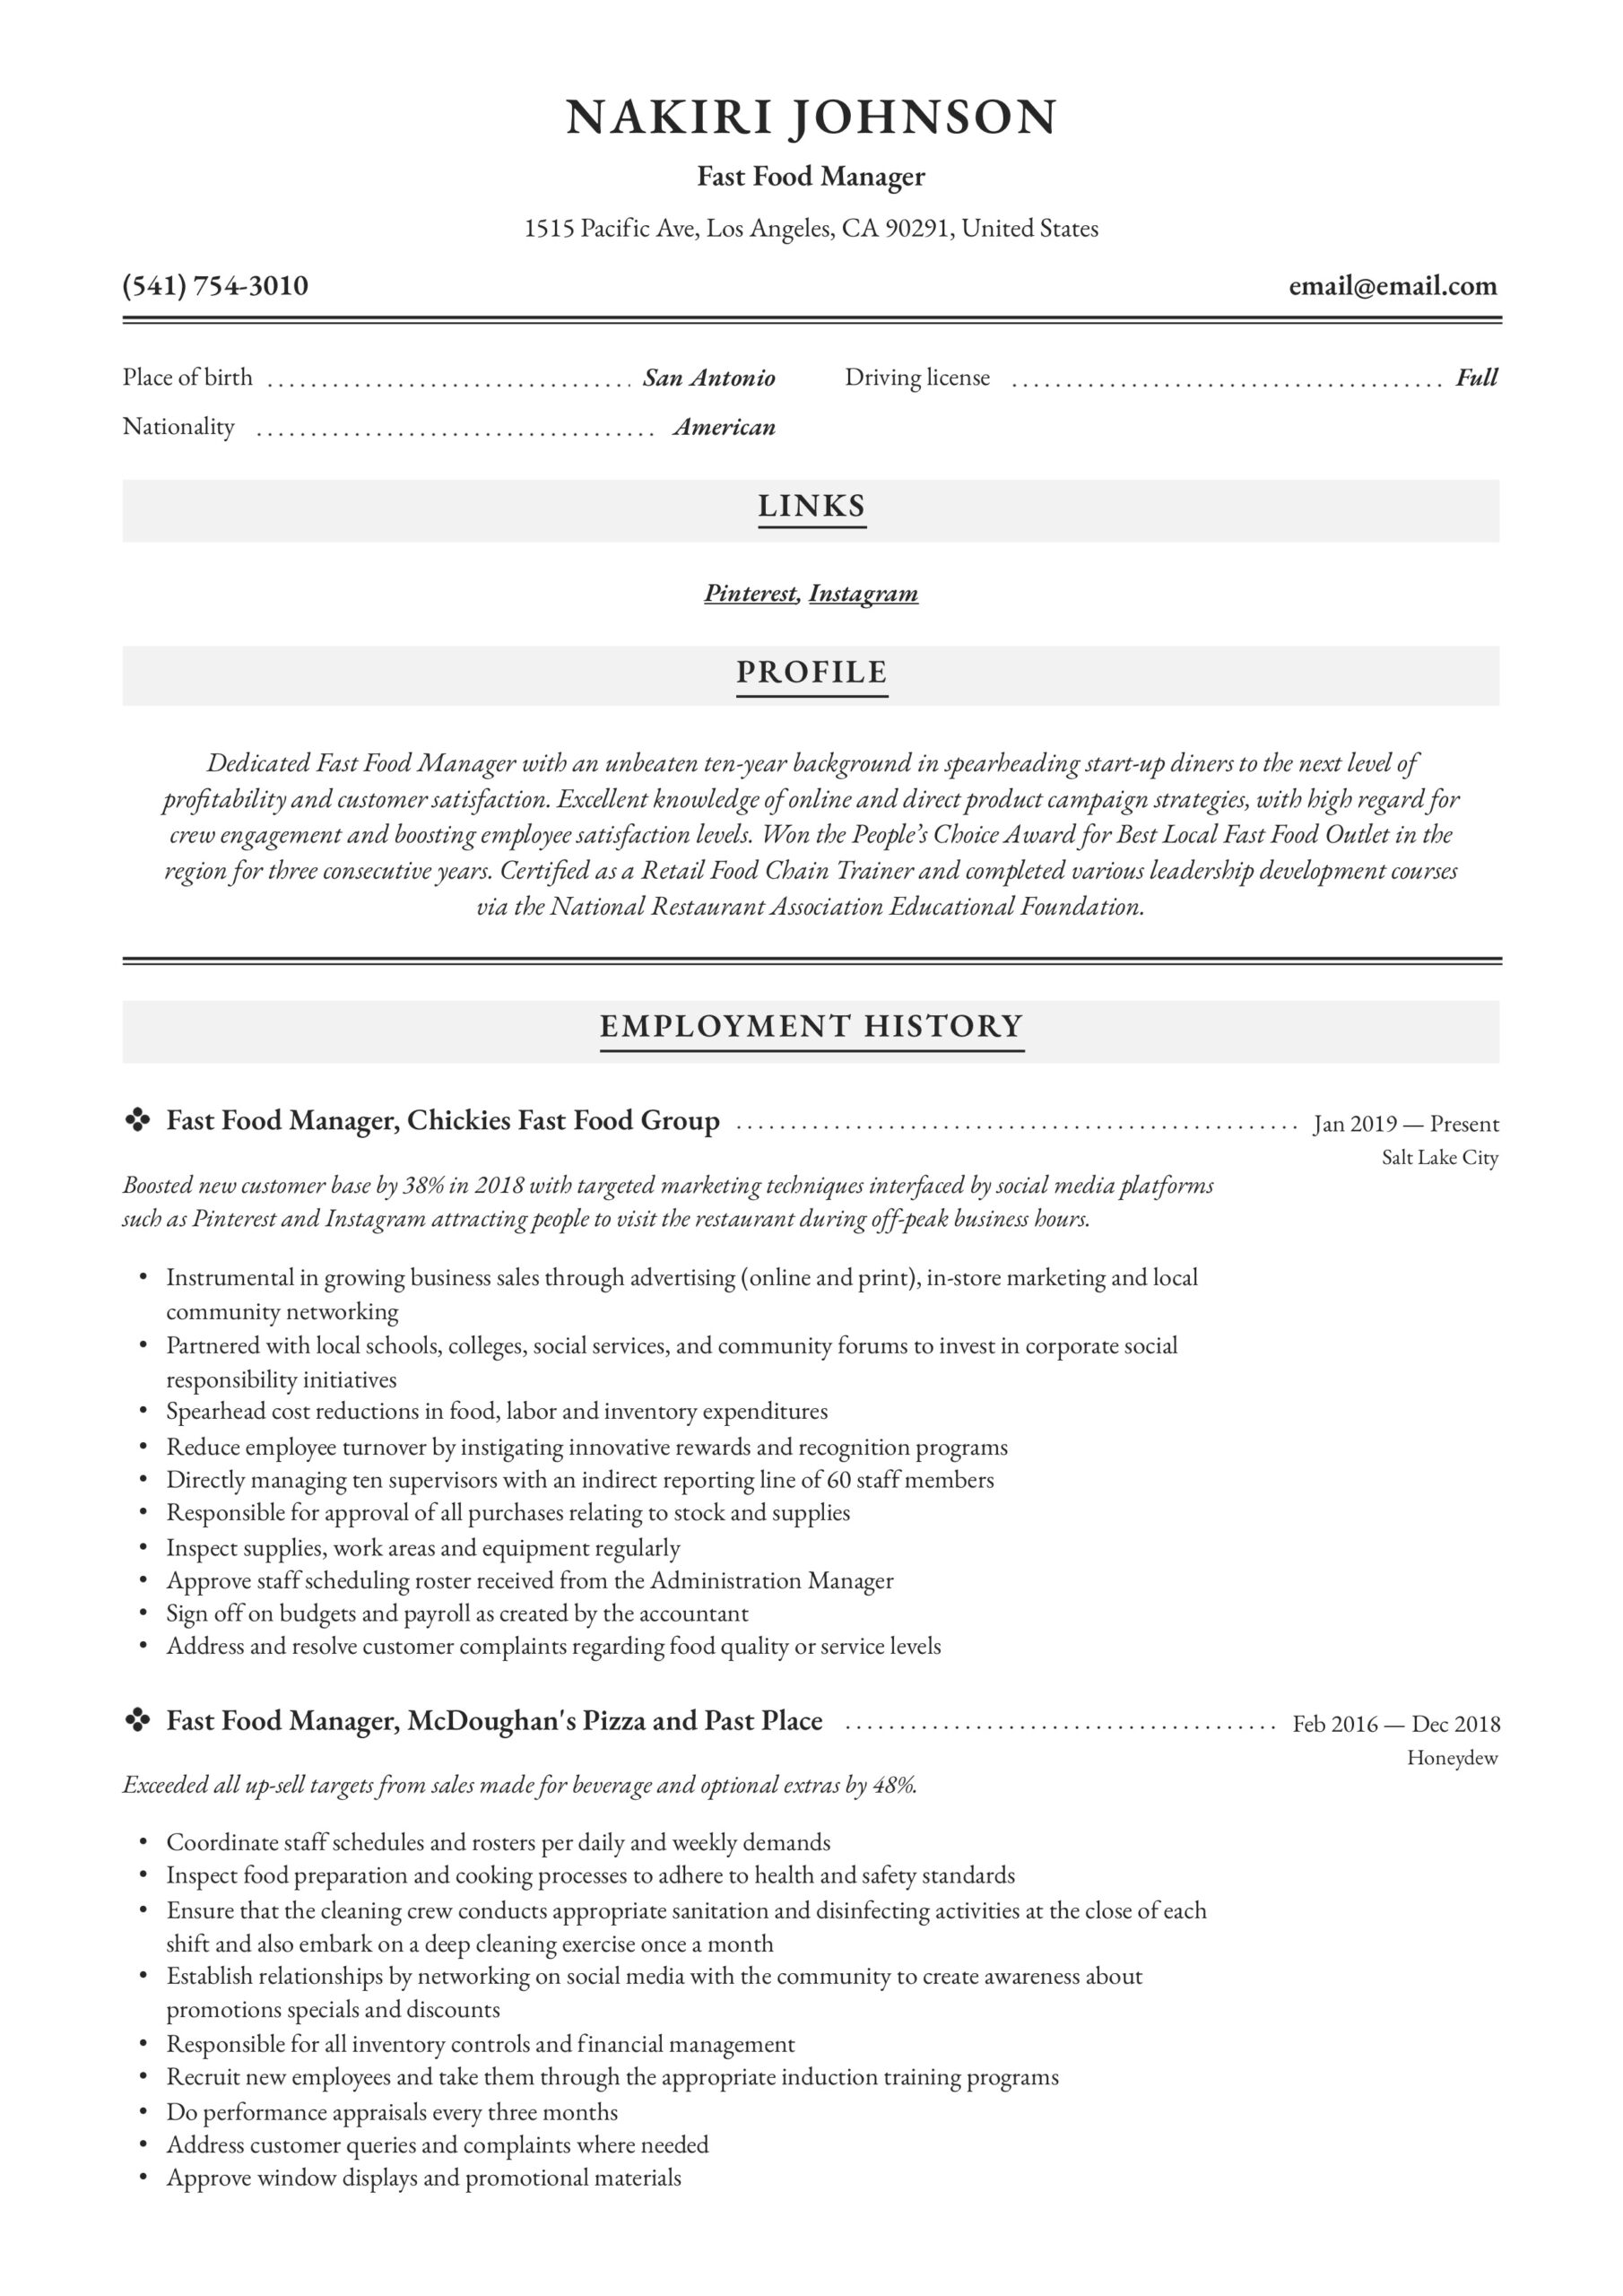 fast food manager resume writing guide examples restaurant general summary for medical Resume Fast Food Restaurant Resume